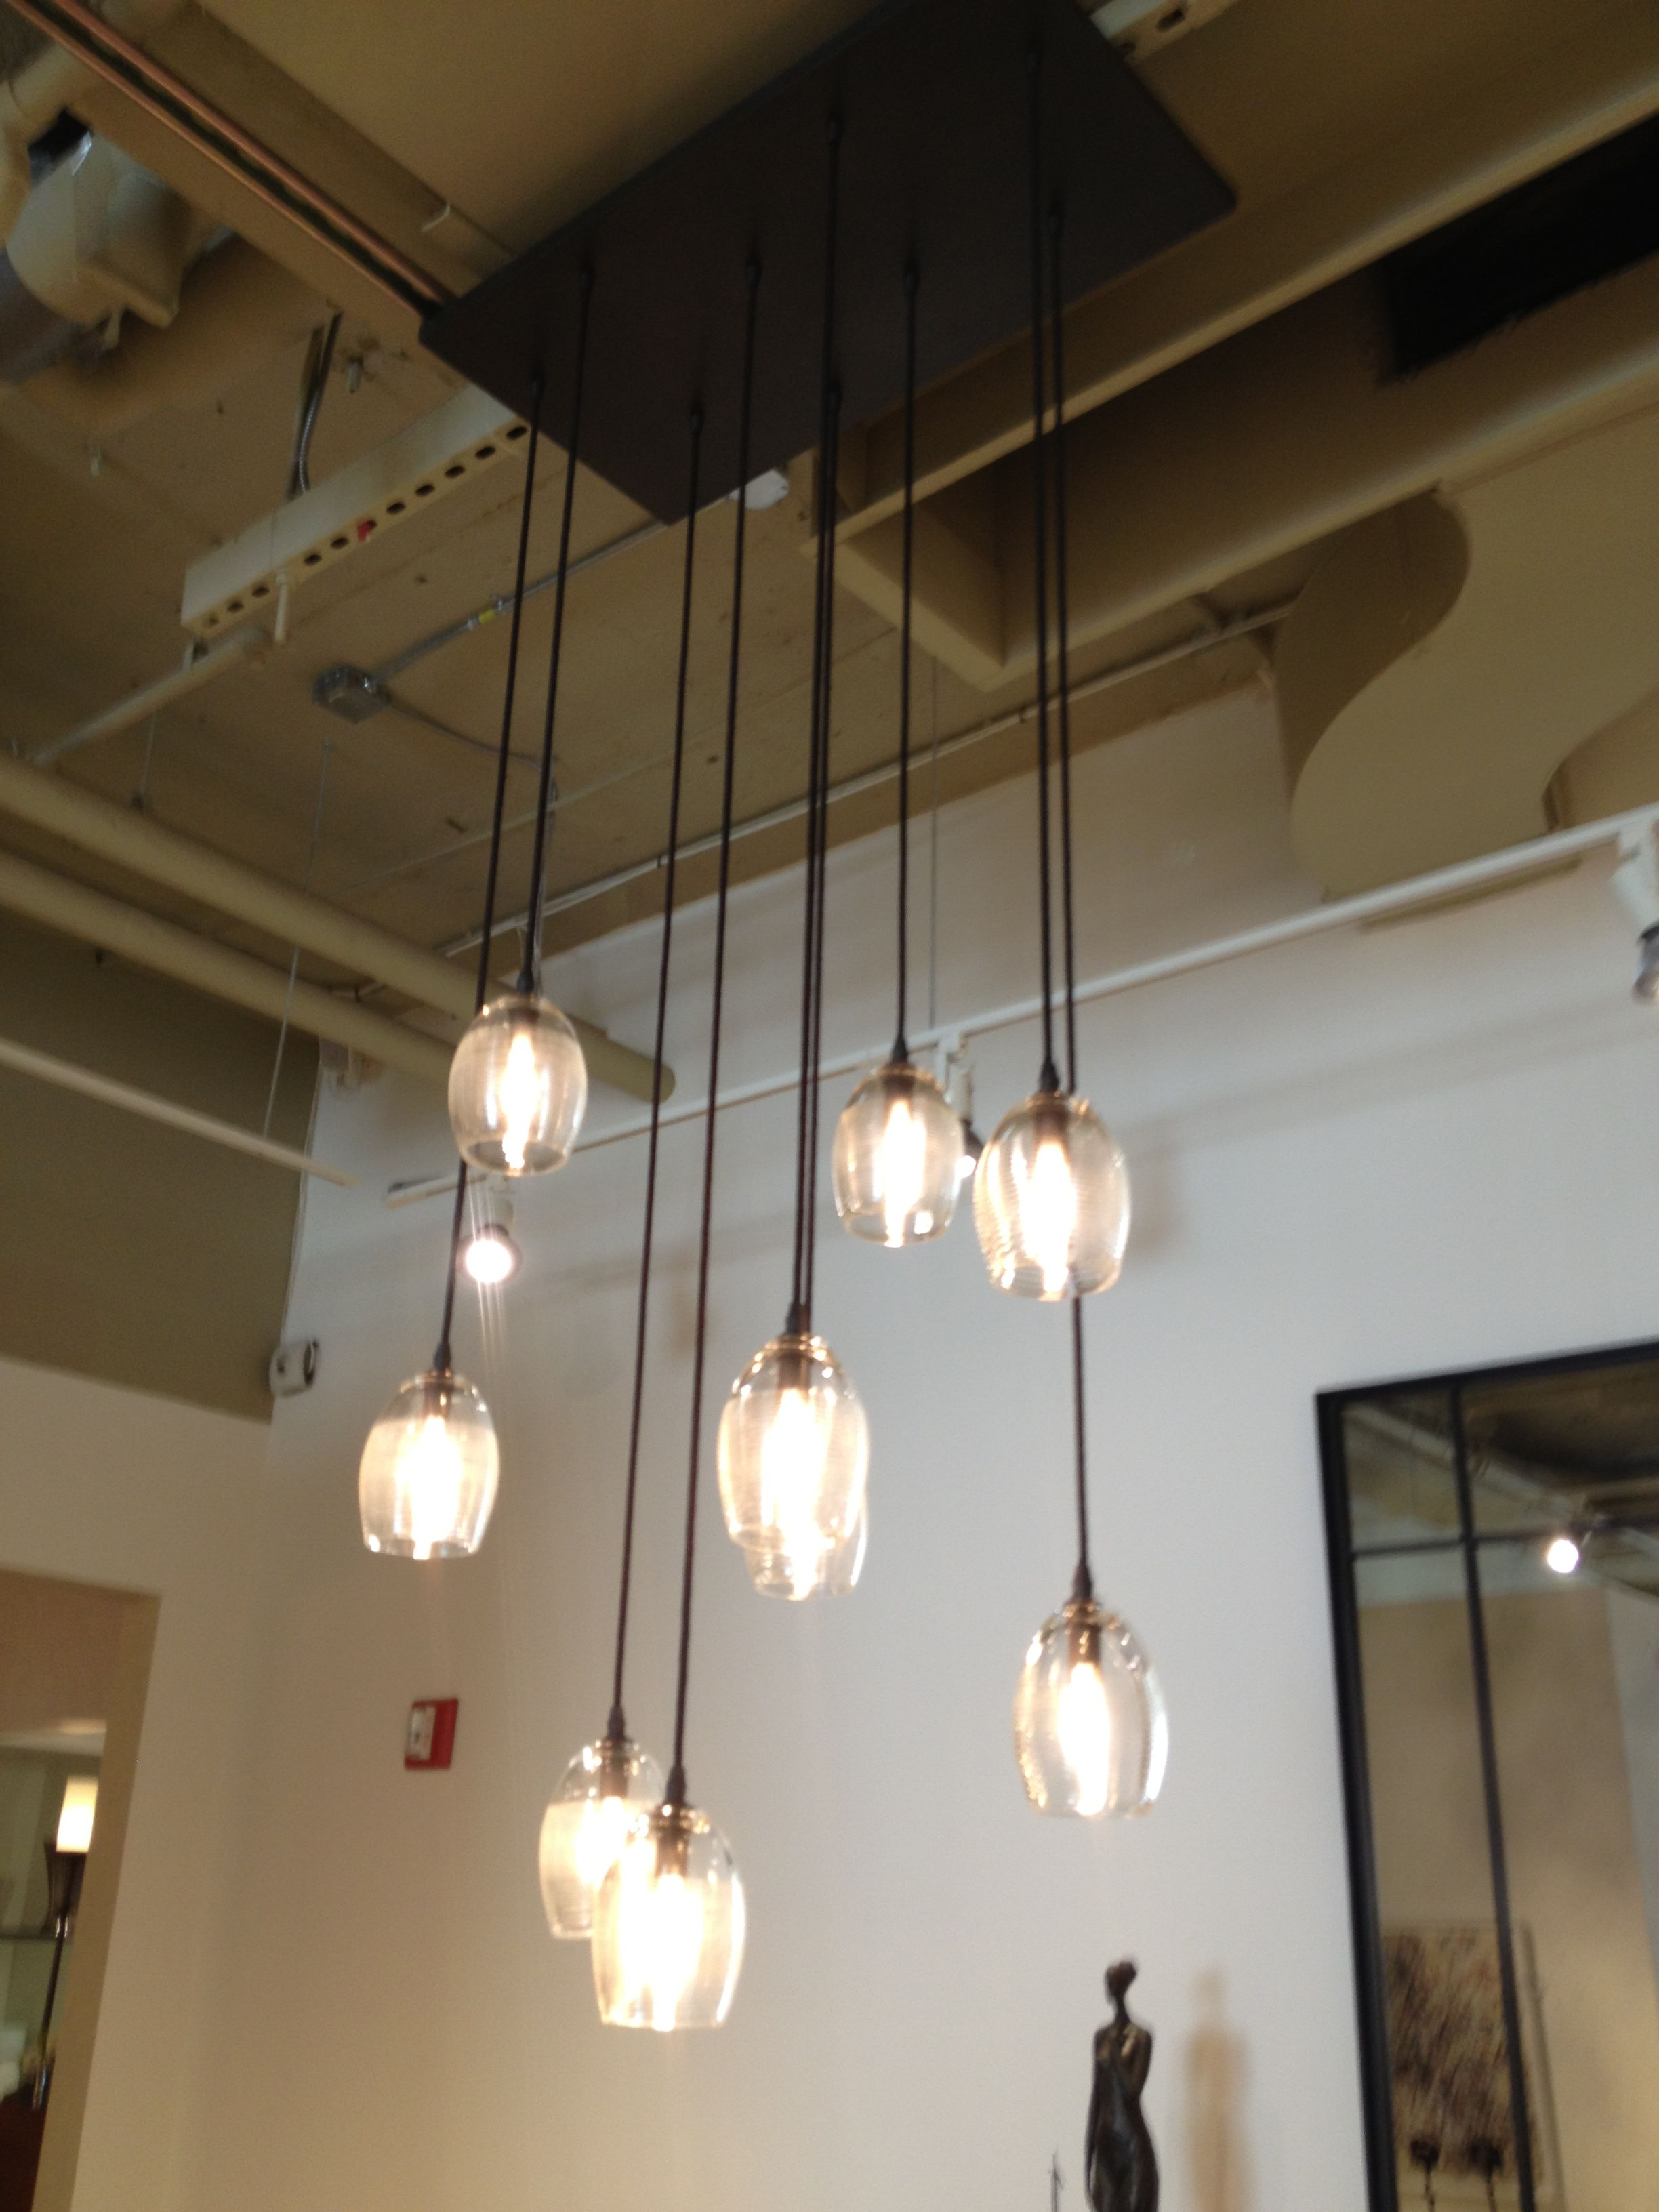 Webster co showroom photo of a custom light fixture made using the holly hunt thread by thread pendant by alison berger